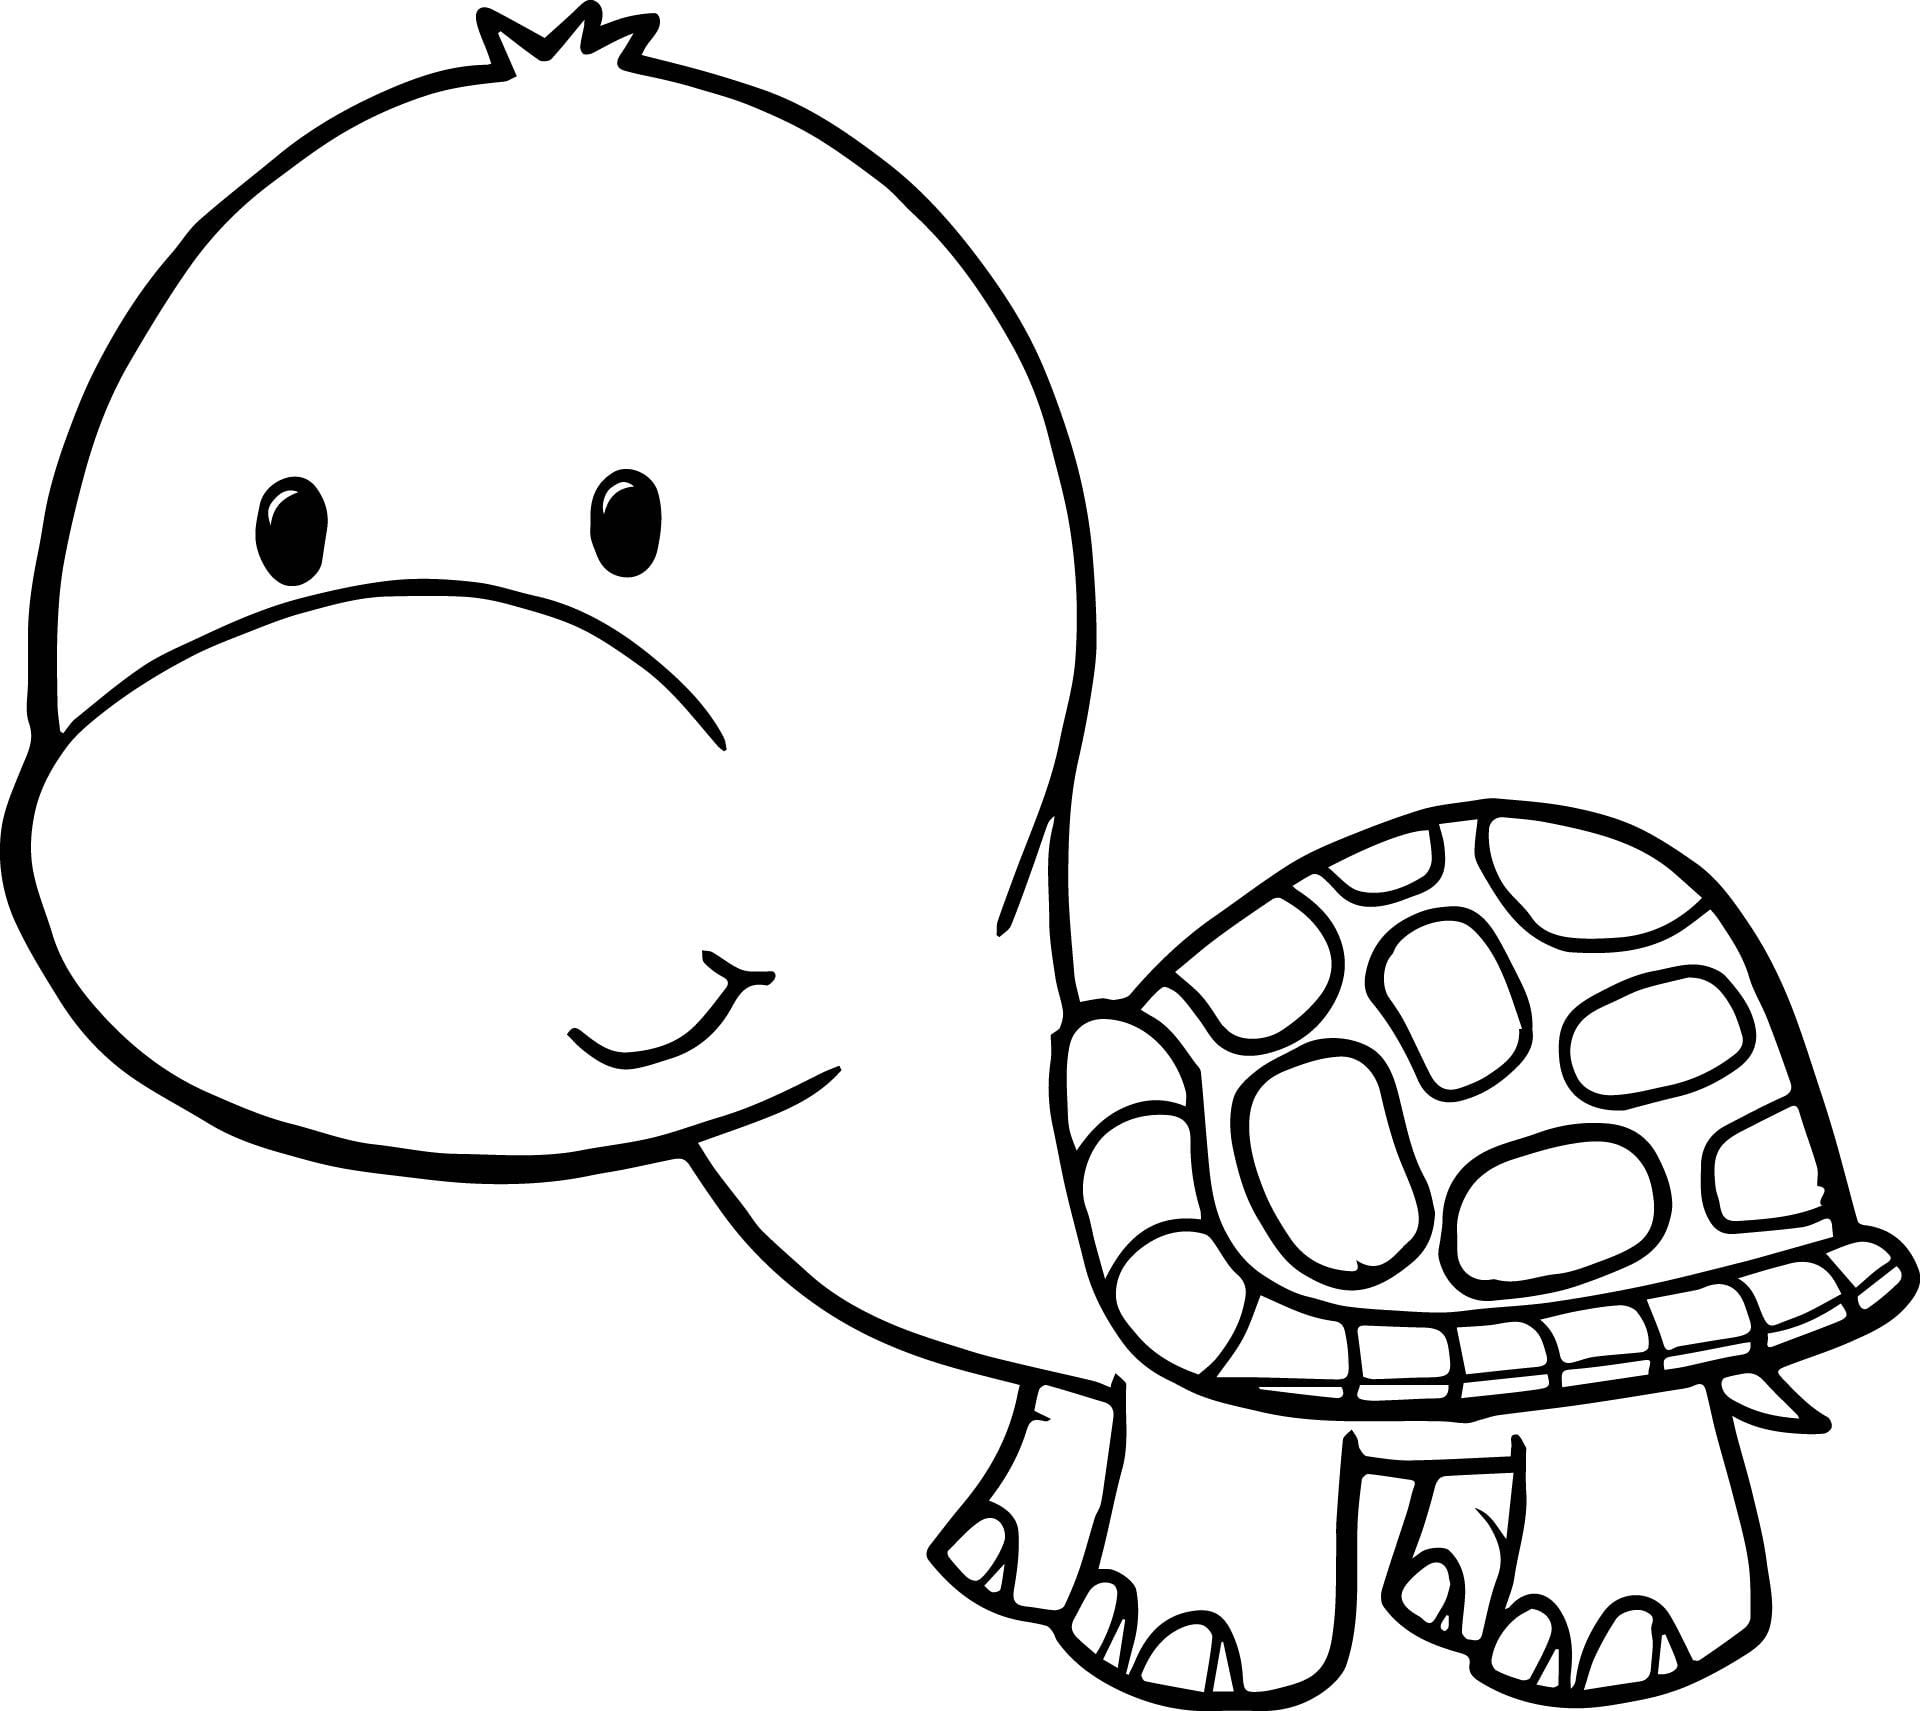 coloring pages of turtle turtles to print for free turtles kids coloring pages coloring turtle pages of